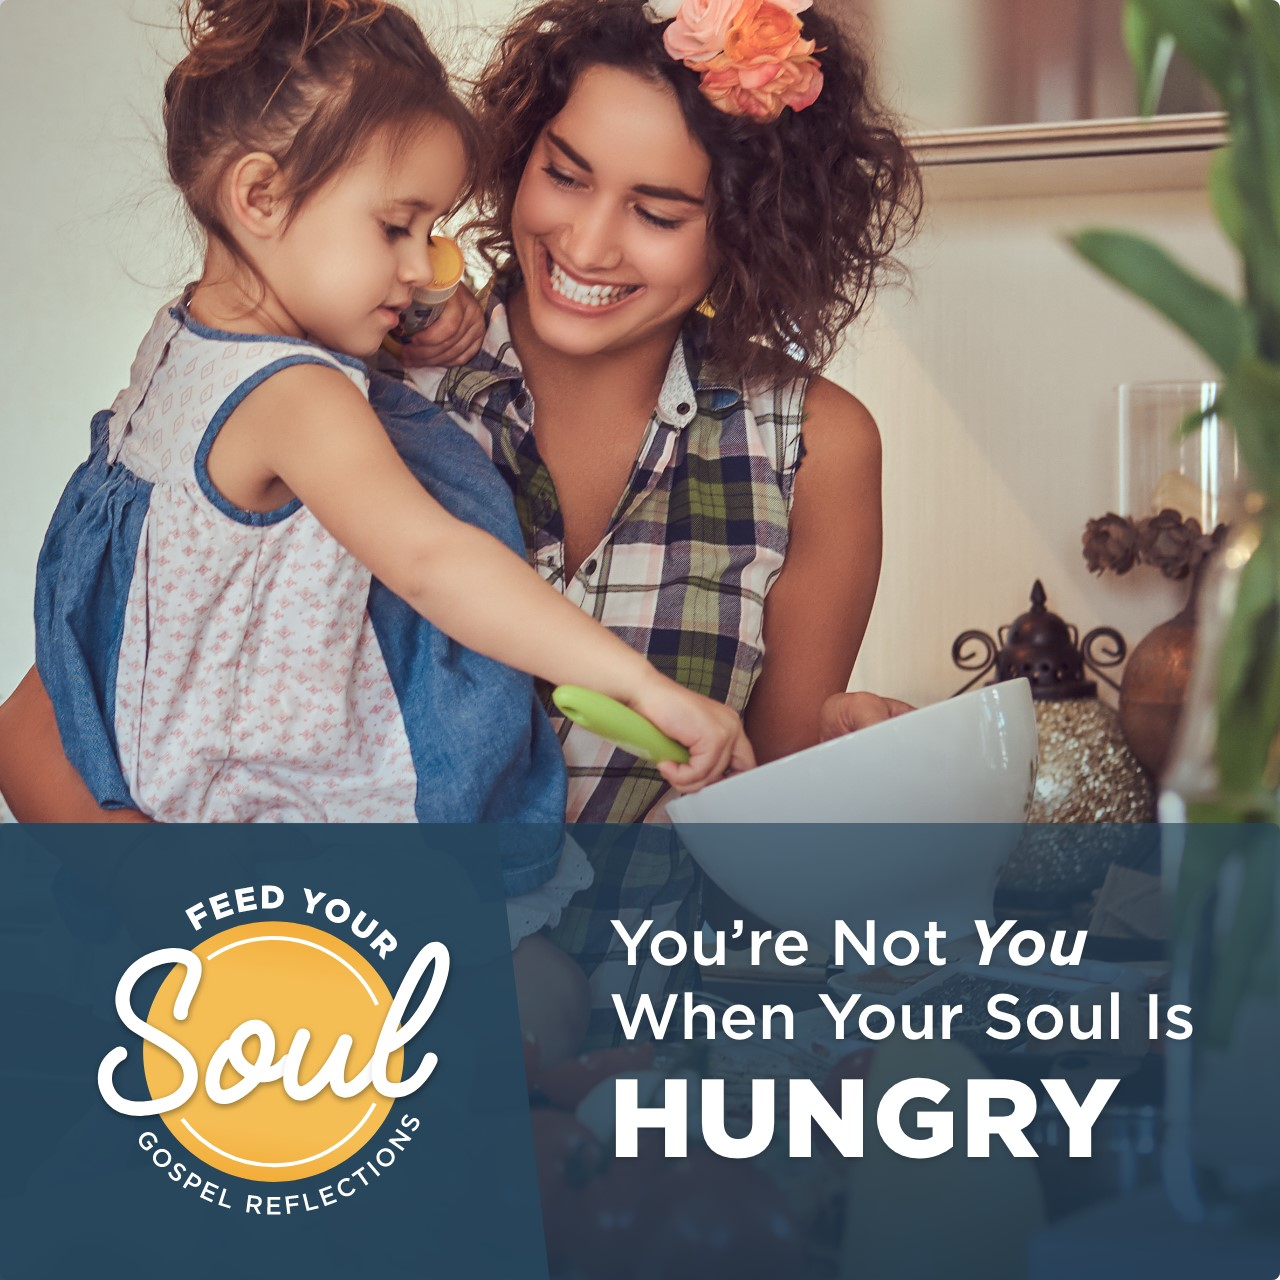 Feed Your Soul Gospel Reflections